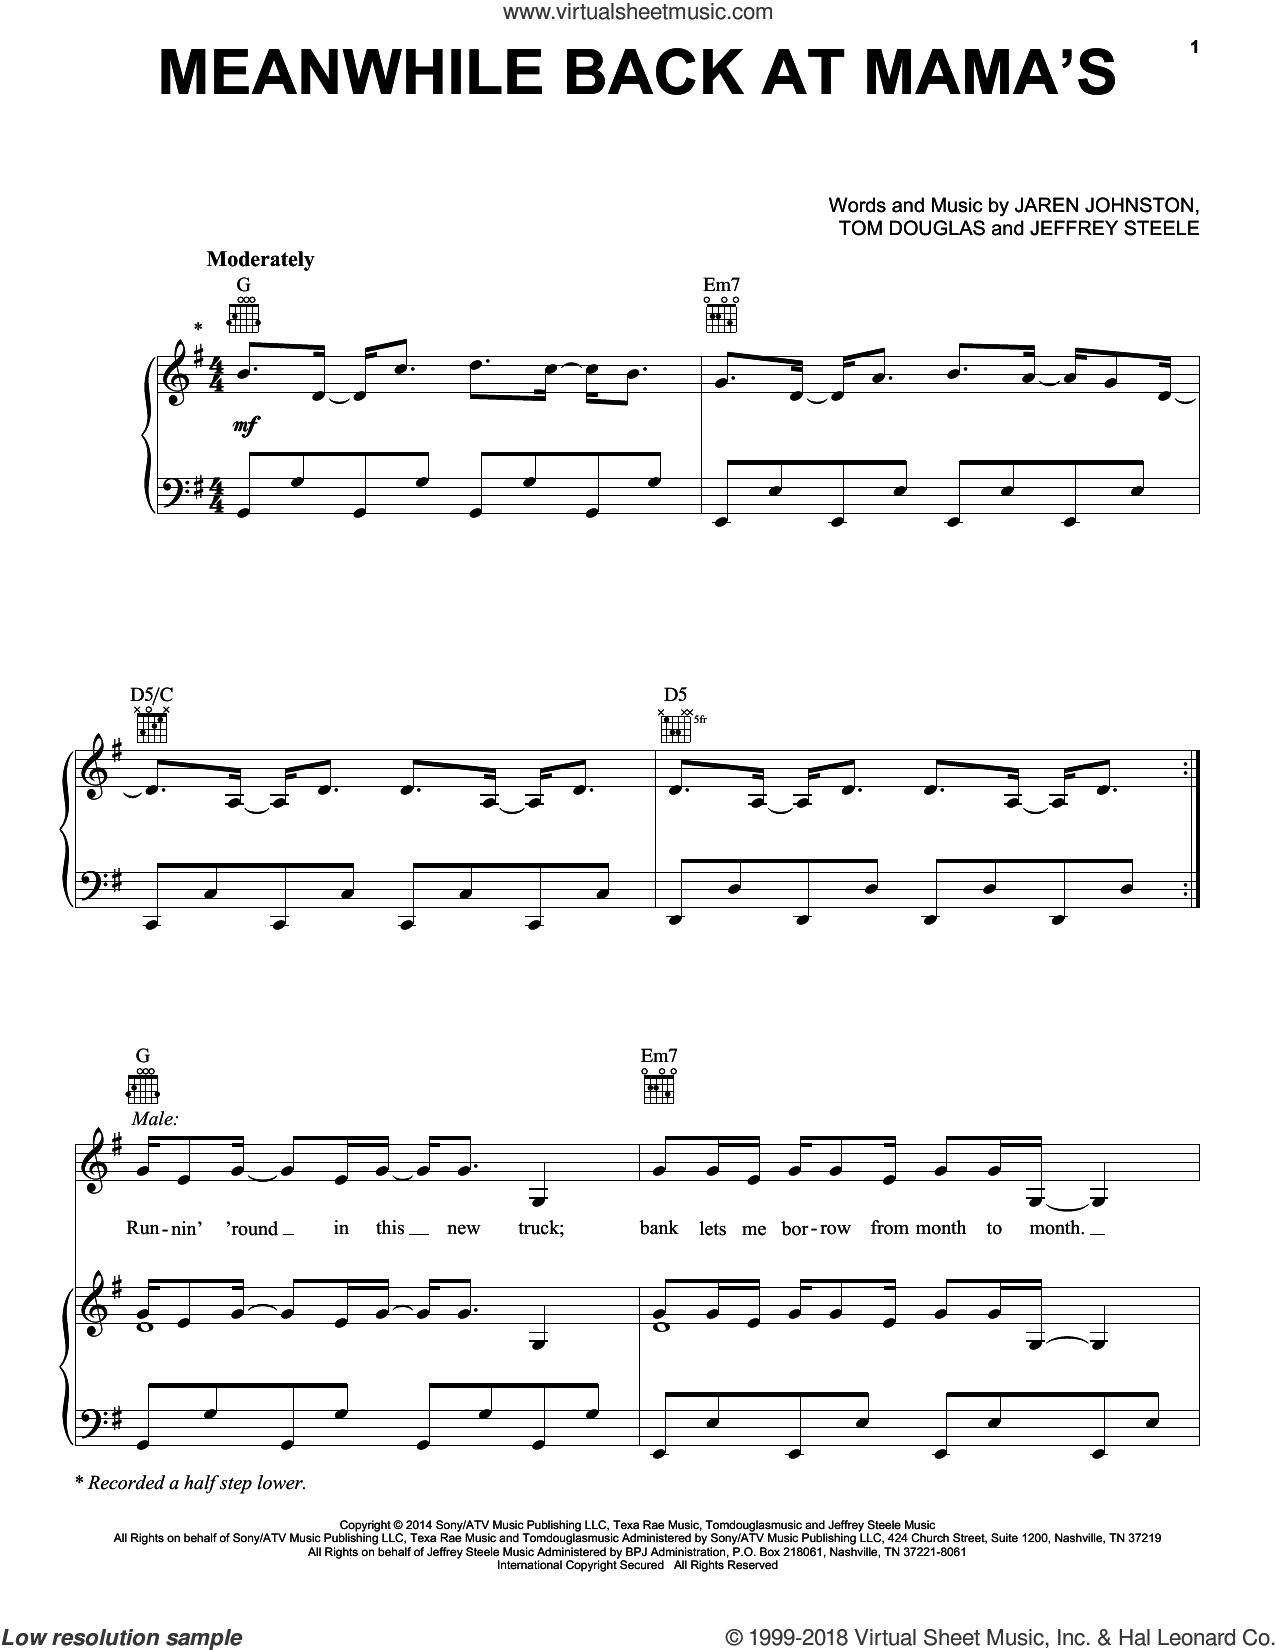 Meanwhile Back At Mama's sheet music for voice, piano or guitar by Faith Hill with Tim McGraw, Jaren Johnston, Jeffrey Steele and Tom Douglas, intermediate skill level